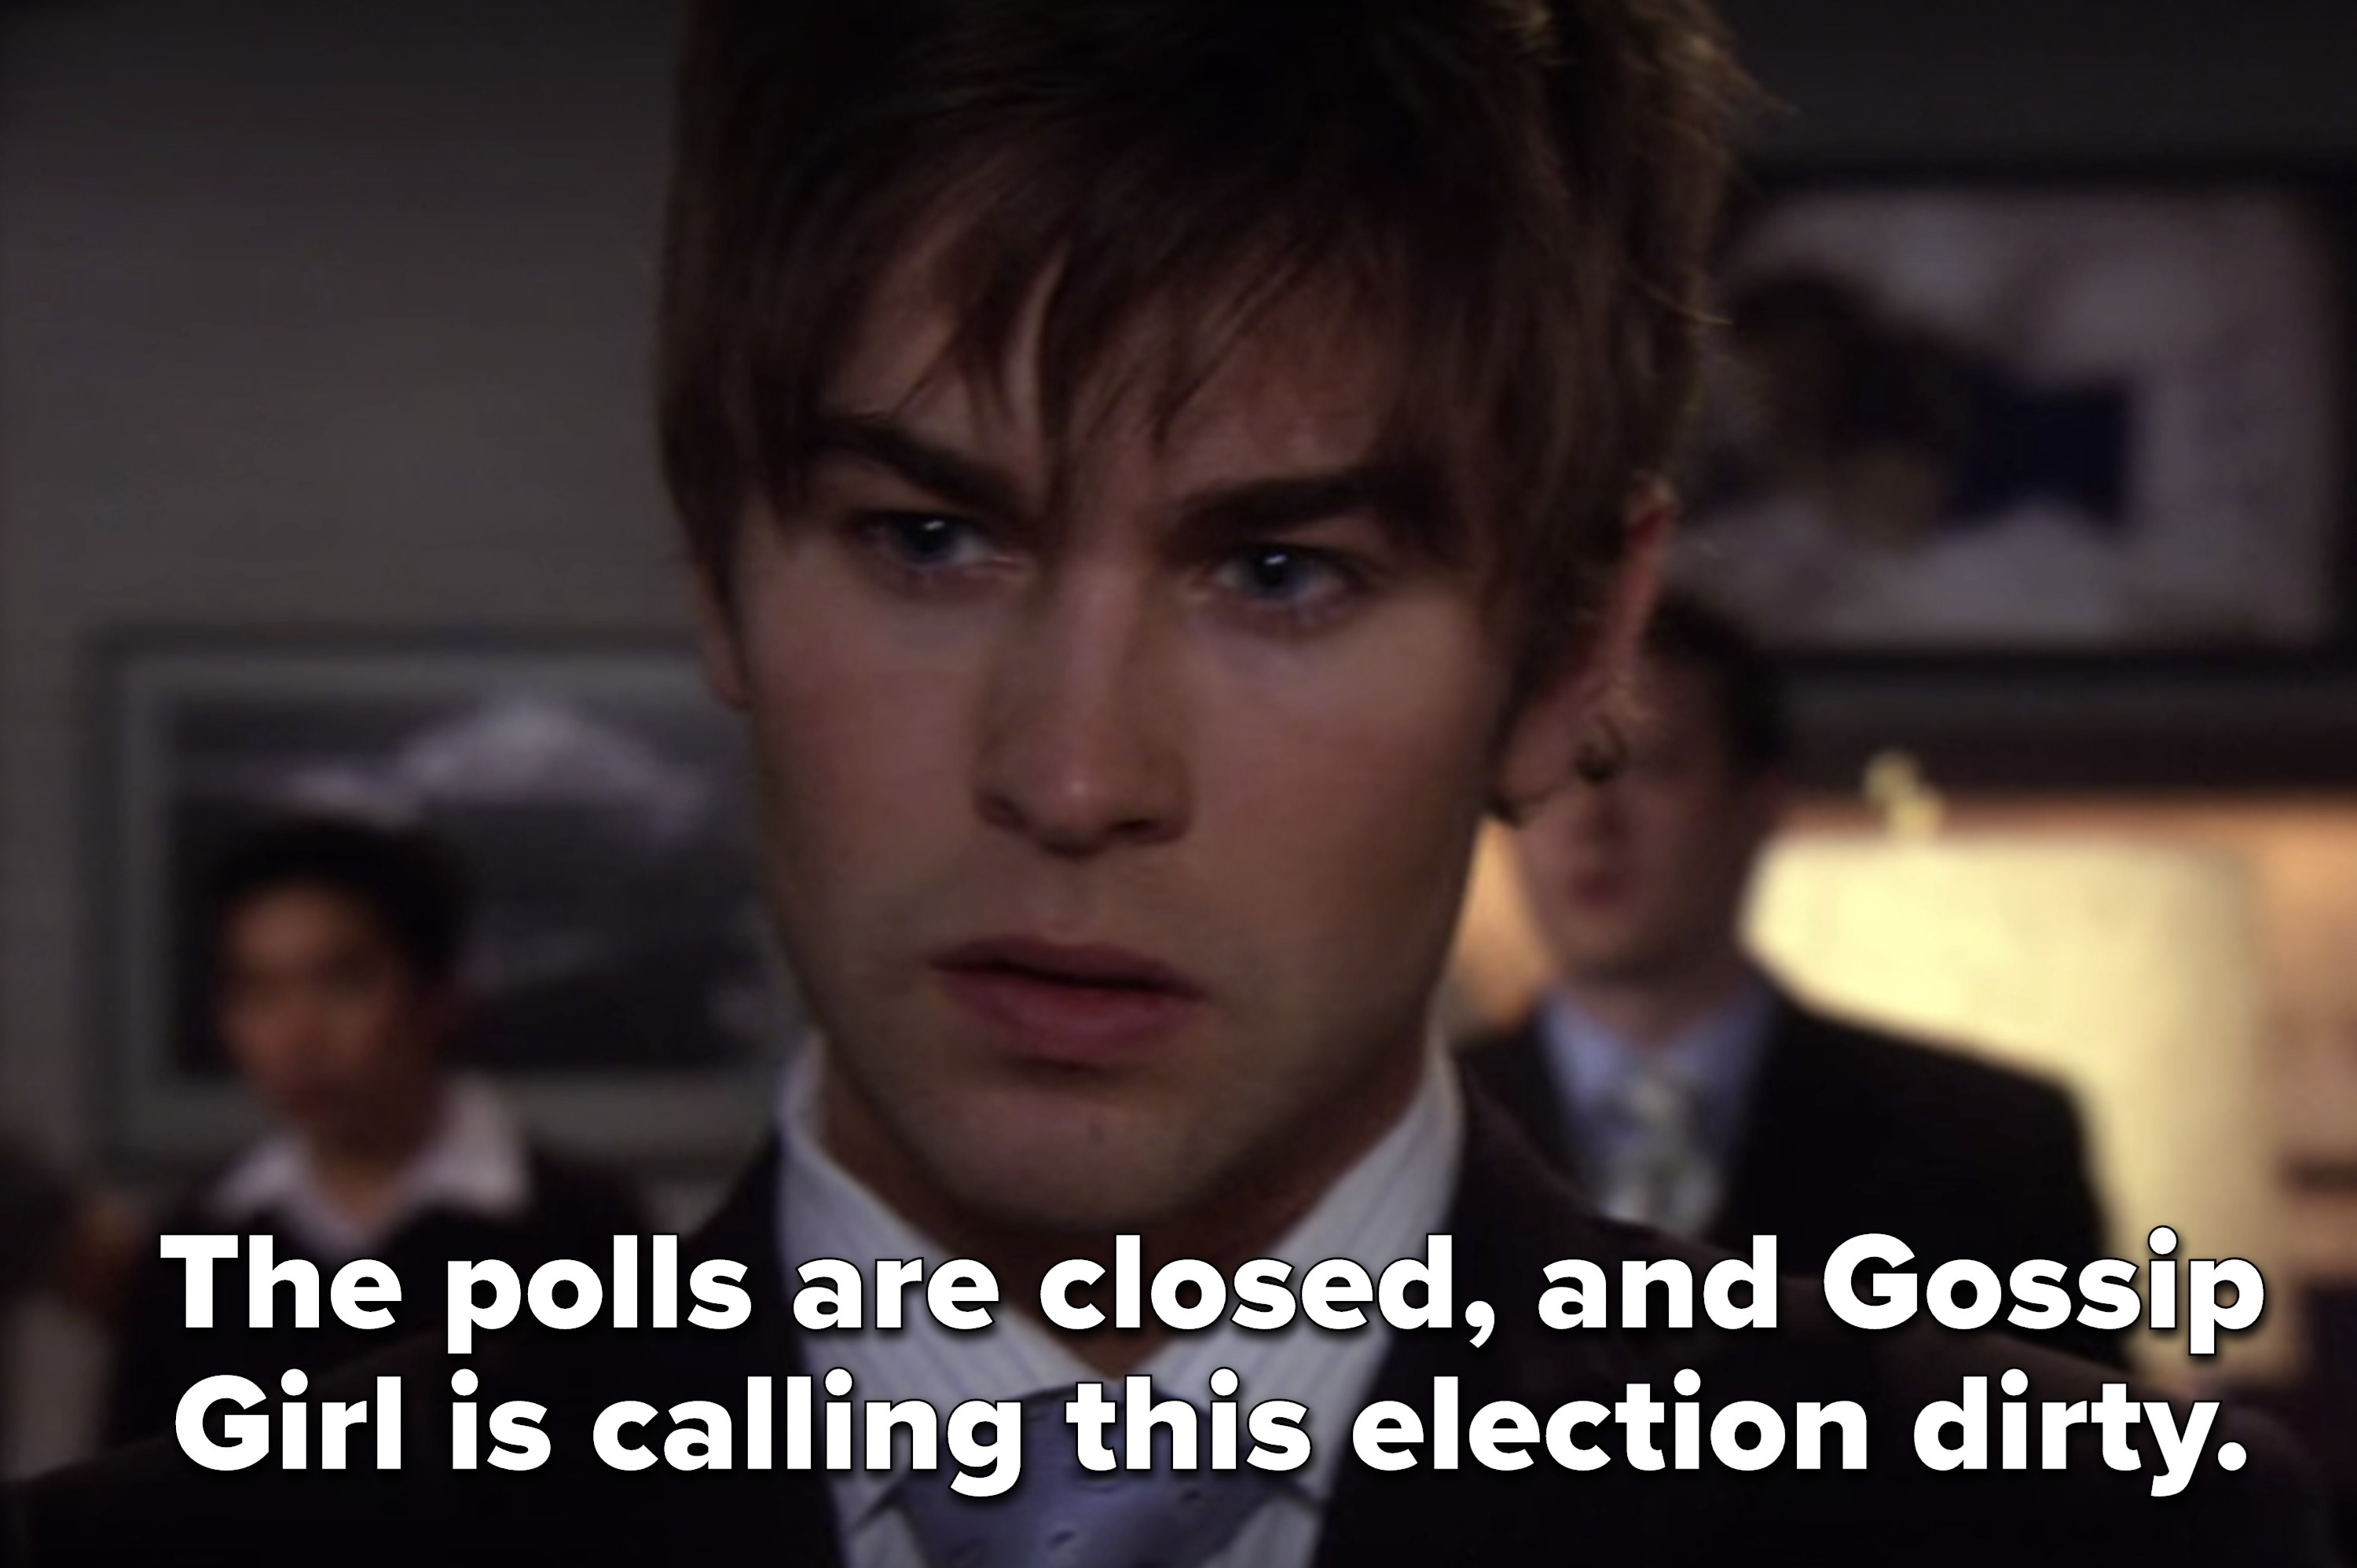 Gossip Girl says the polls are closed, and the election is dirty, as Nate looks upset